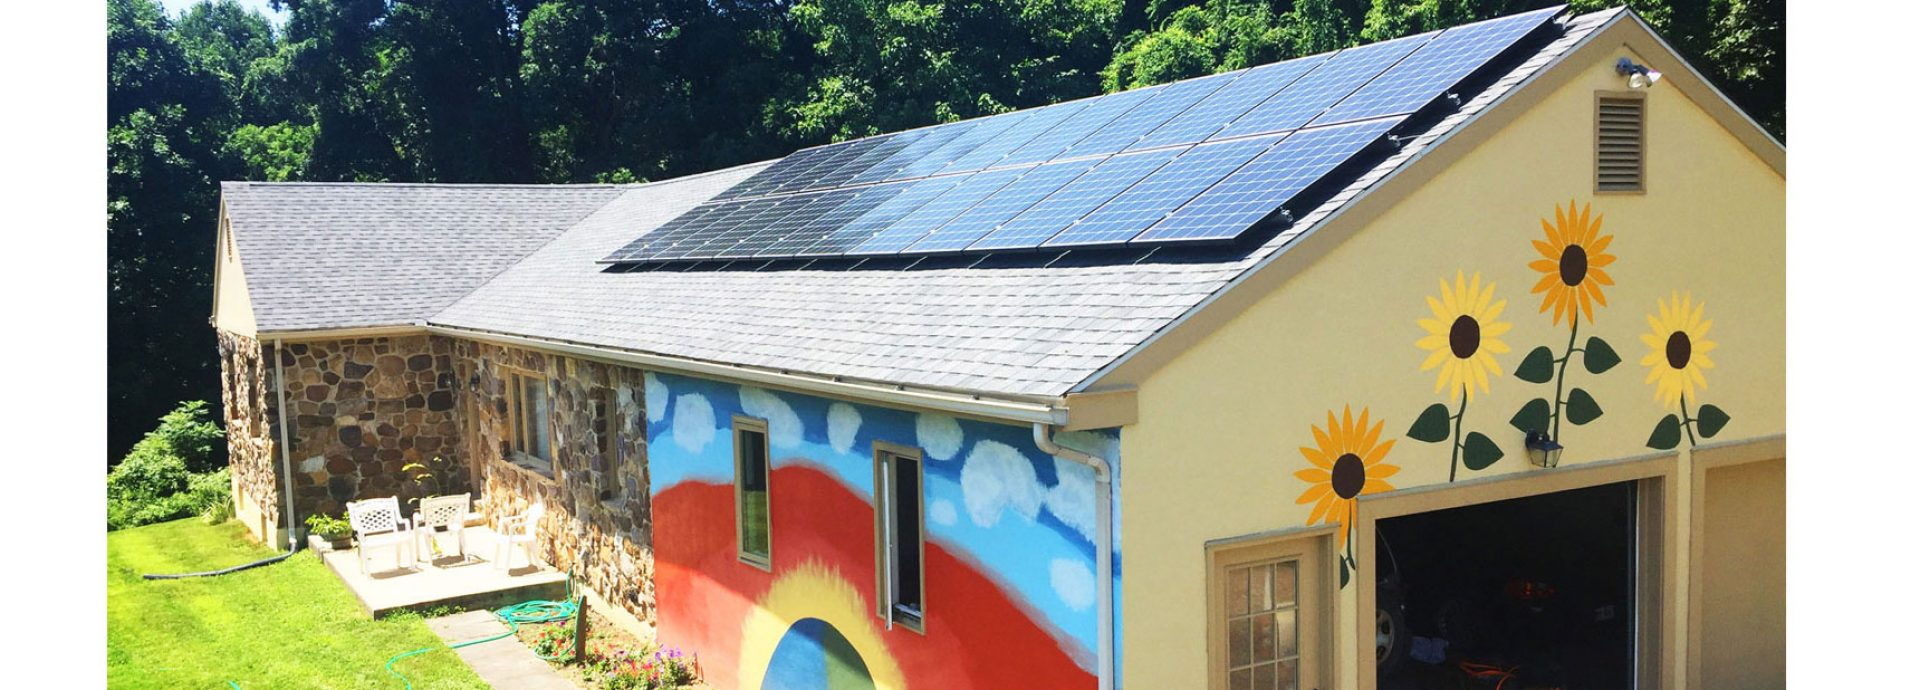 notthingham pa grid tied solar panel system 3